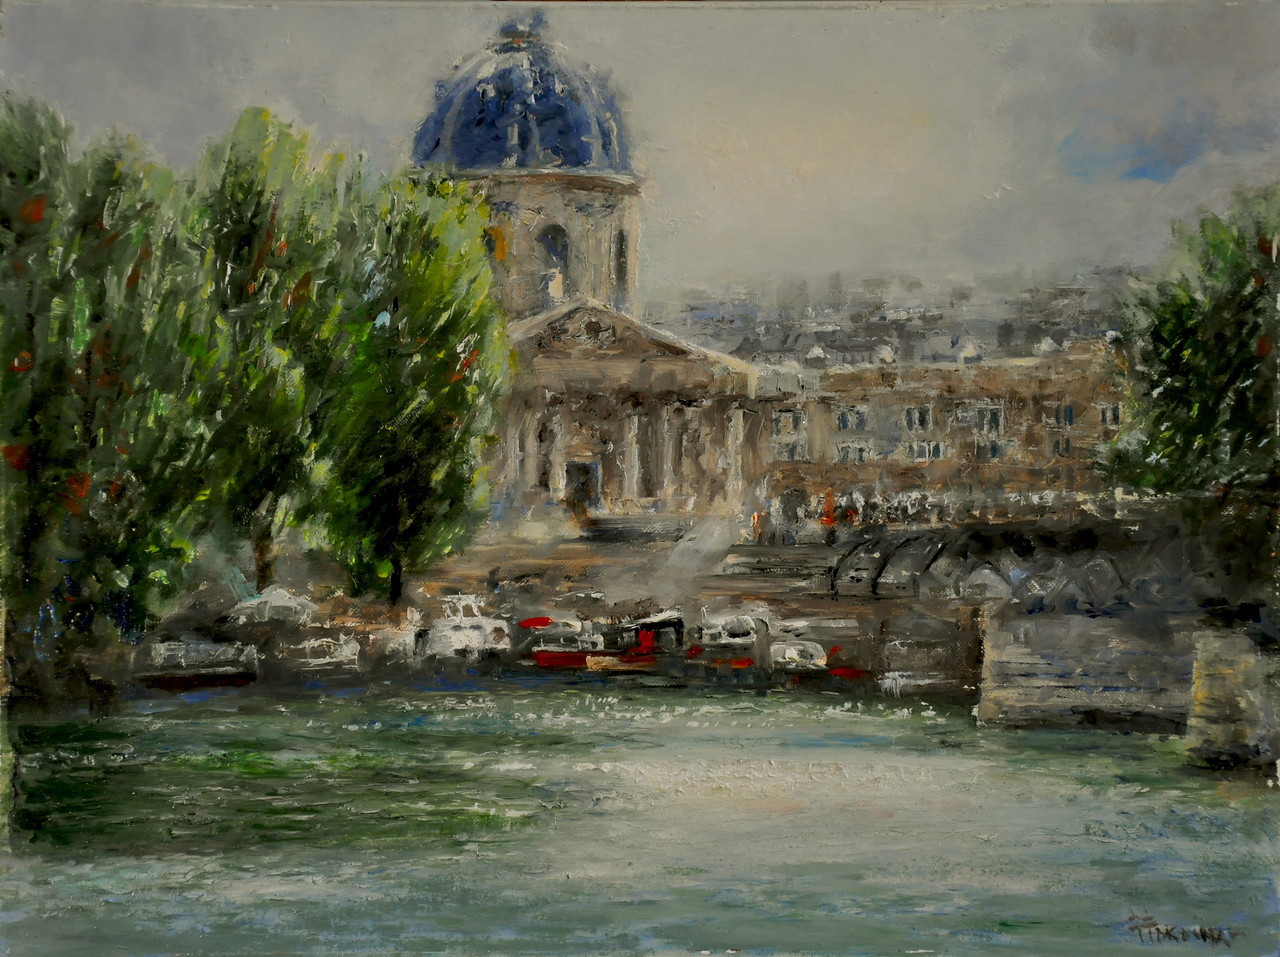 Institu Francais on Seine - 2 (Paris, France) Oil on Linen 12X16